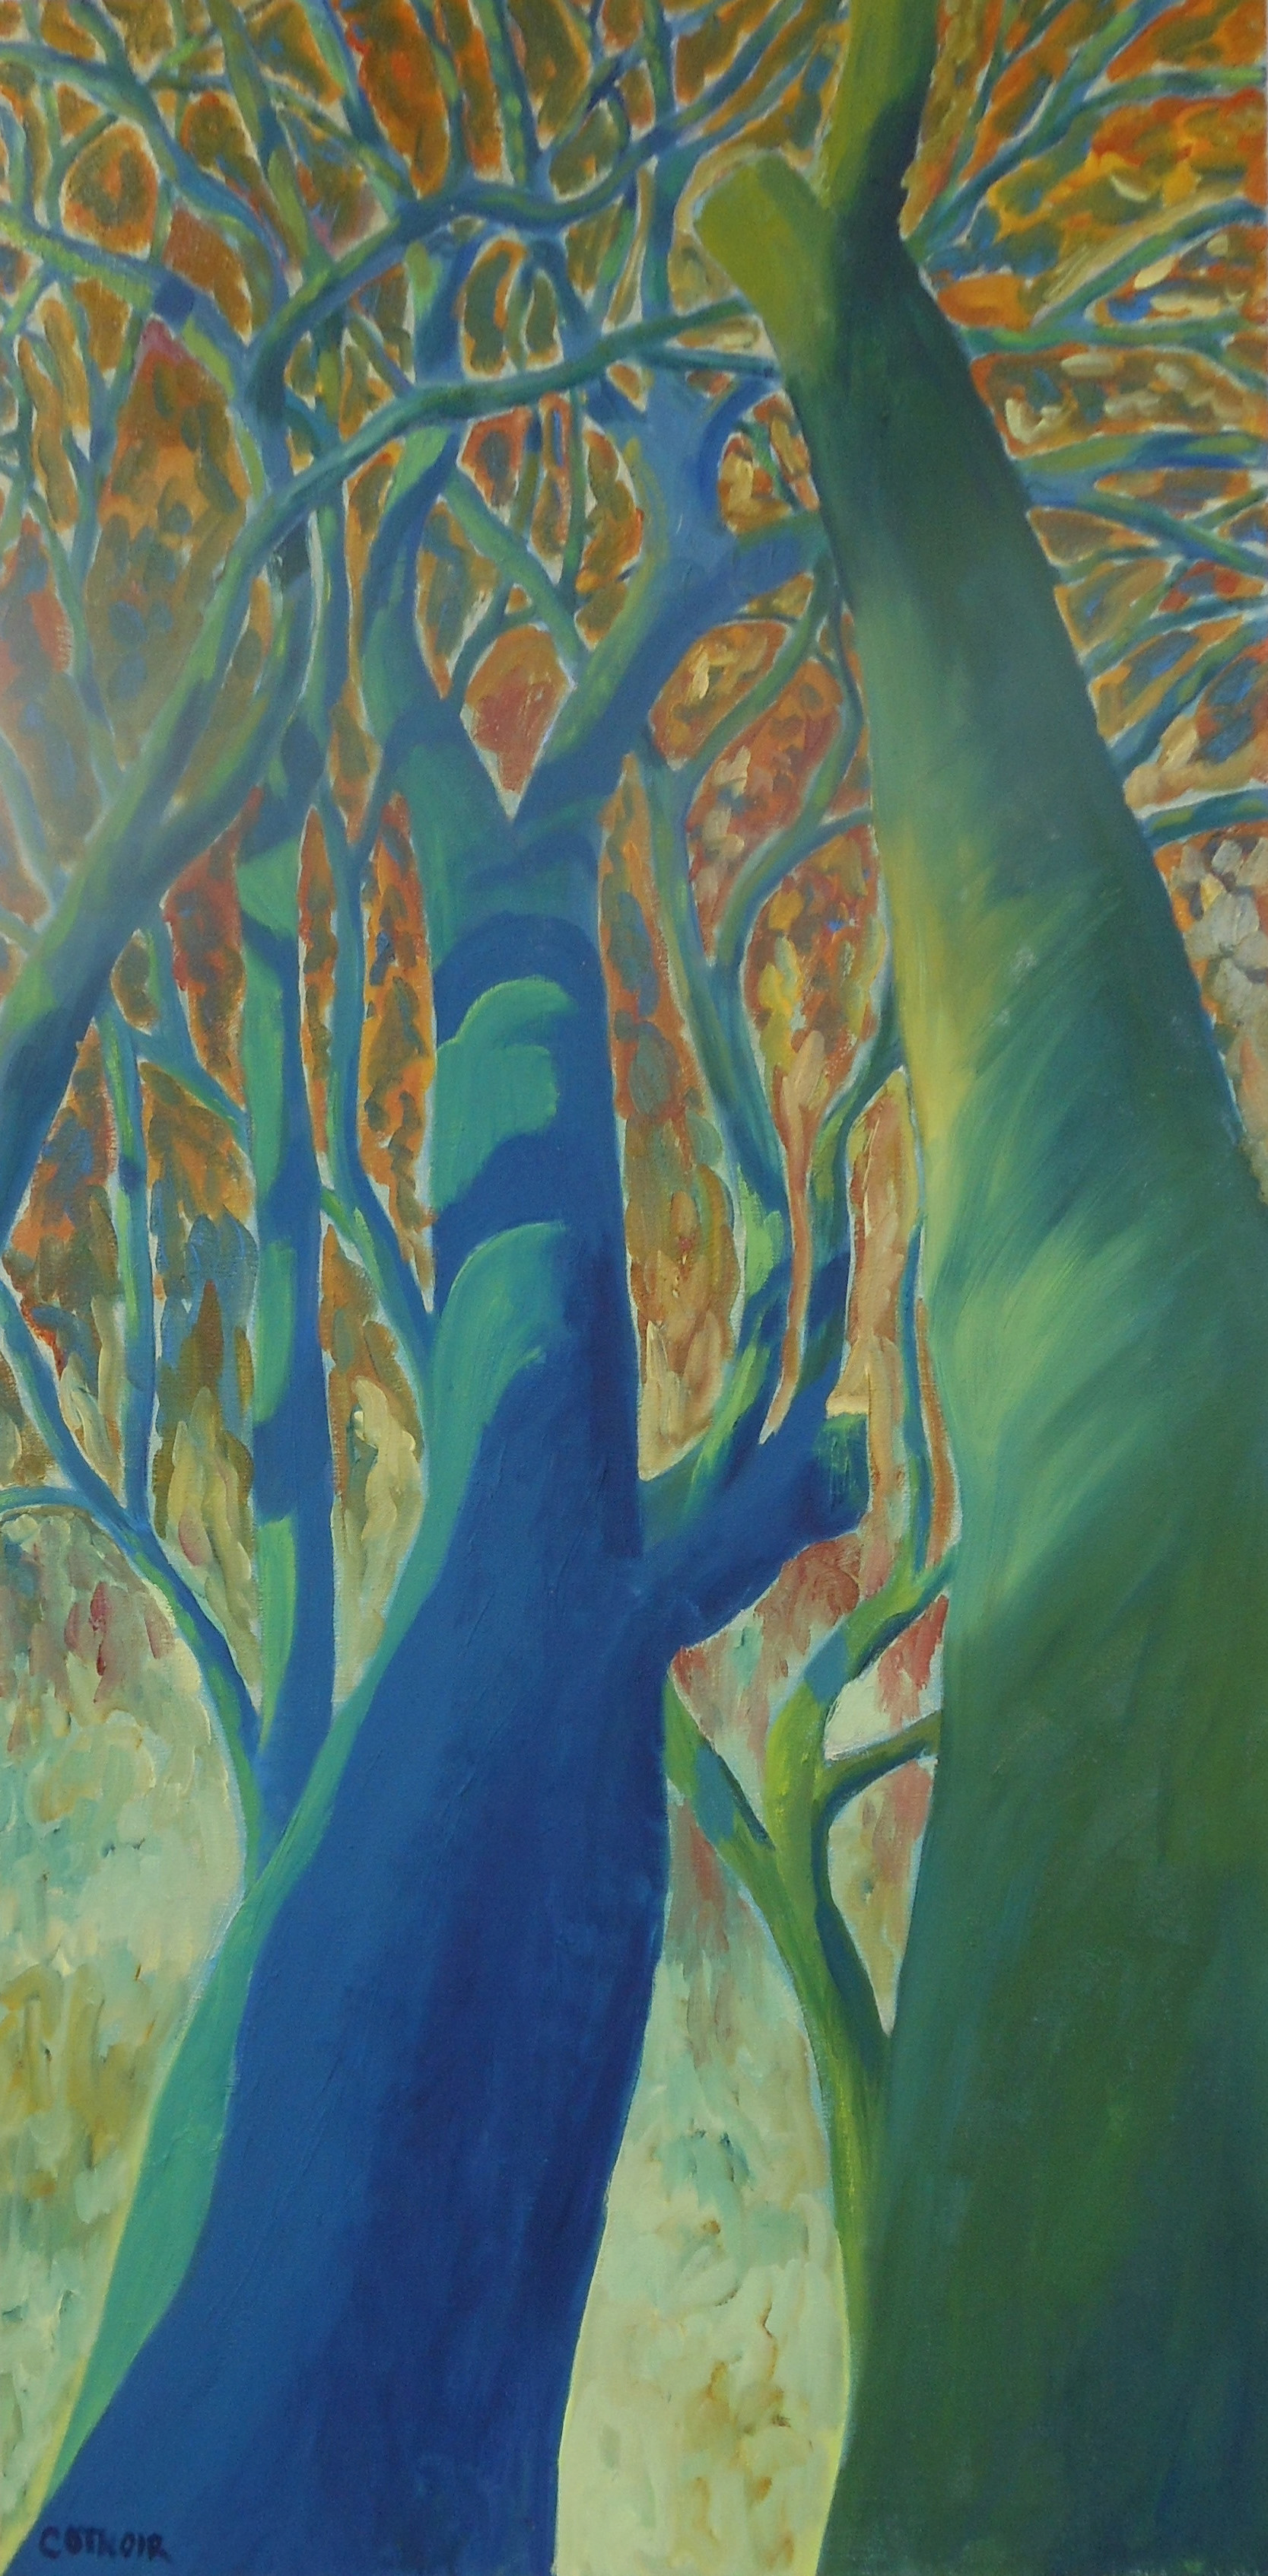 Shadow Trees in Blue and Green